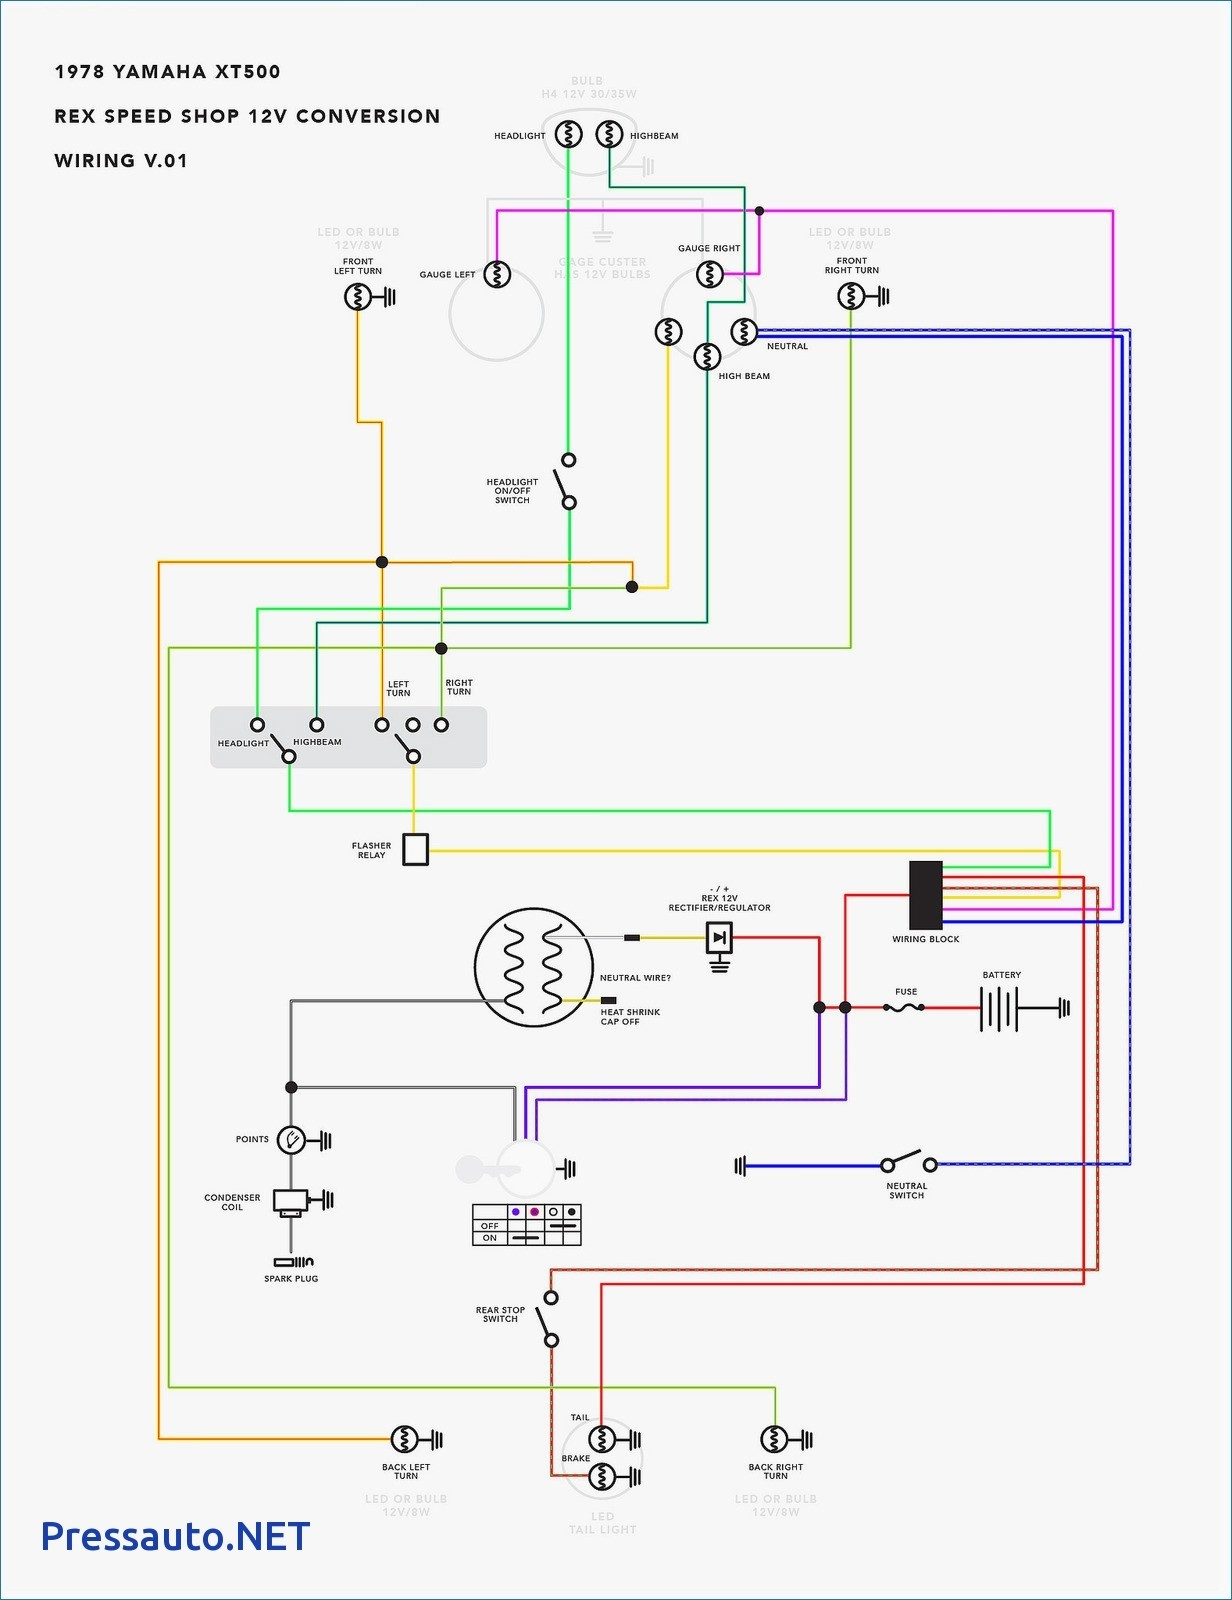 Wiring Diagram For Ih 350 Utility Get Free Image About Wiring